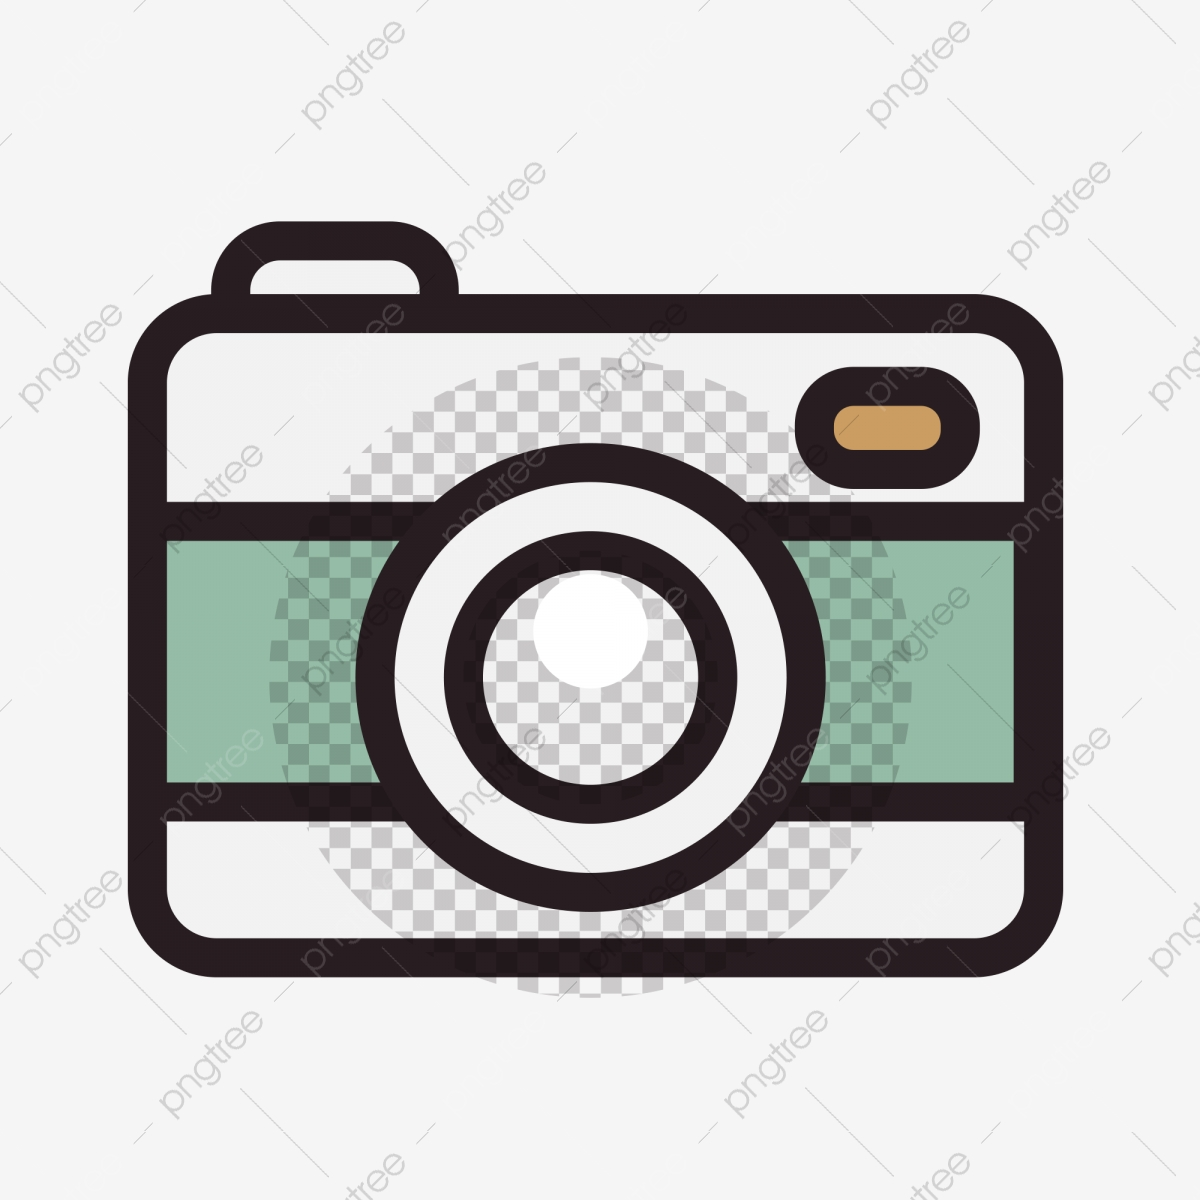 Cartoon Camera Camera Cartoon Illustration Creative Cartoon Download Png Transparent Clipart Image And Psd File For Free Download